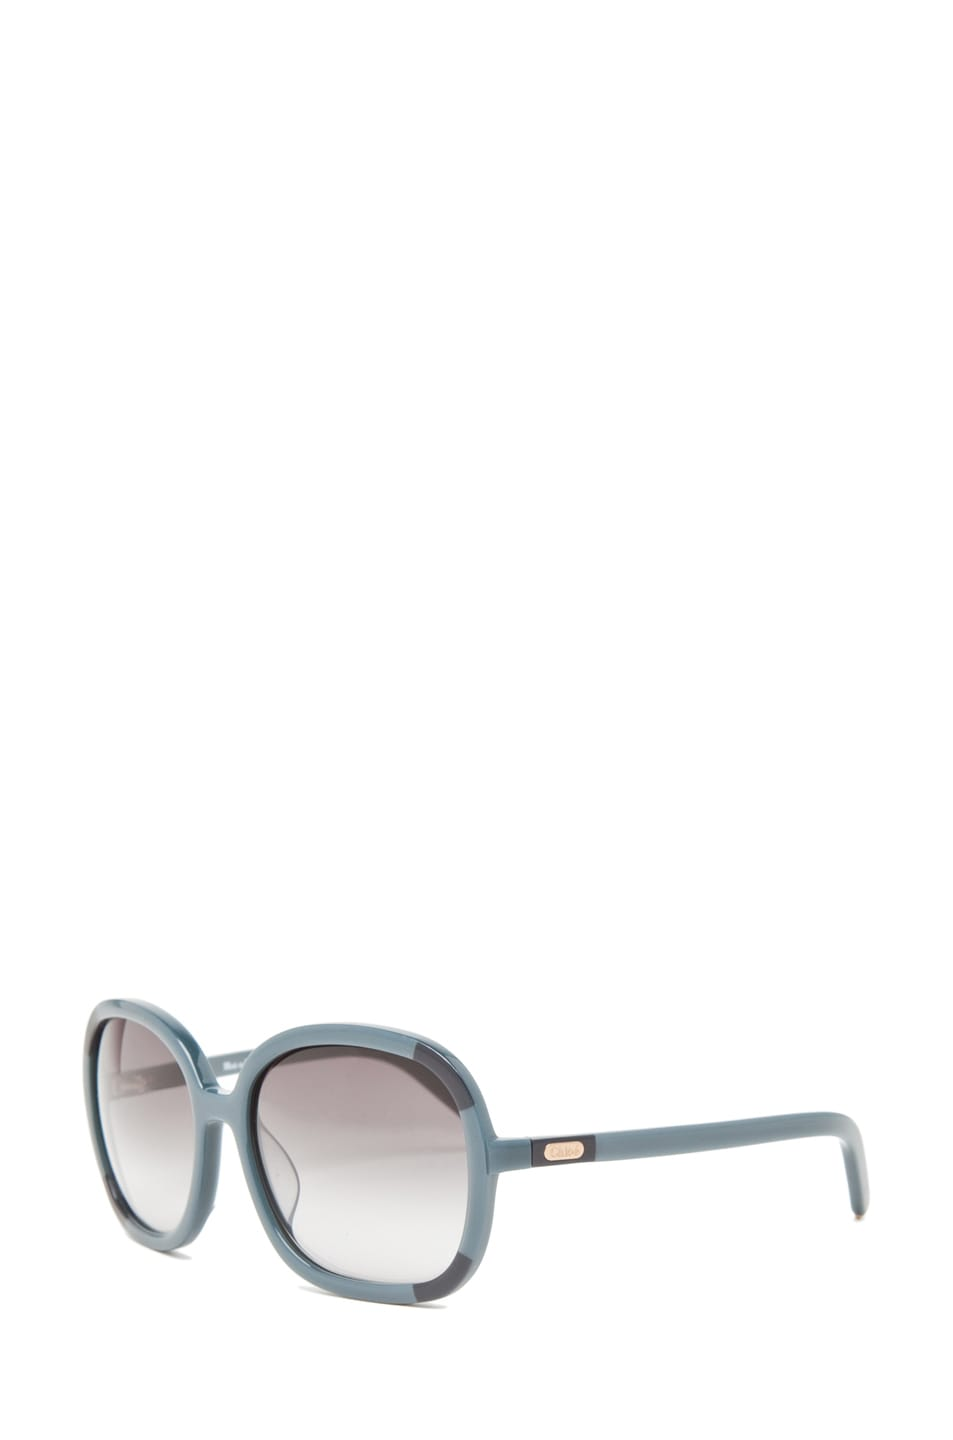 Image 2 of Chloe Sunglasses CL2189A in Petroleum Blue